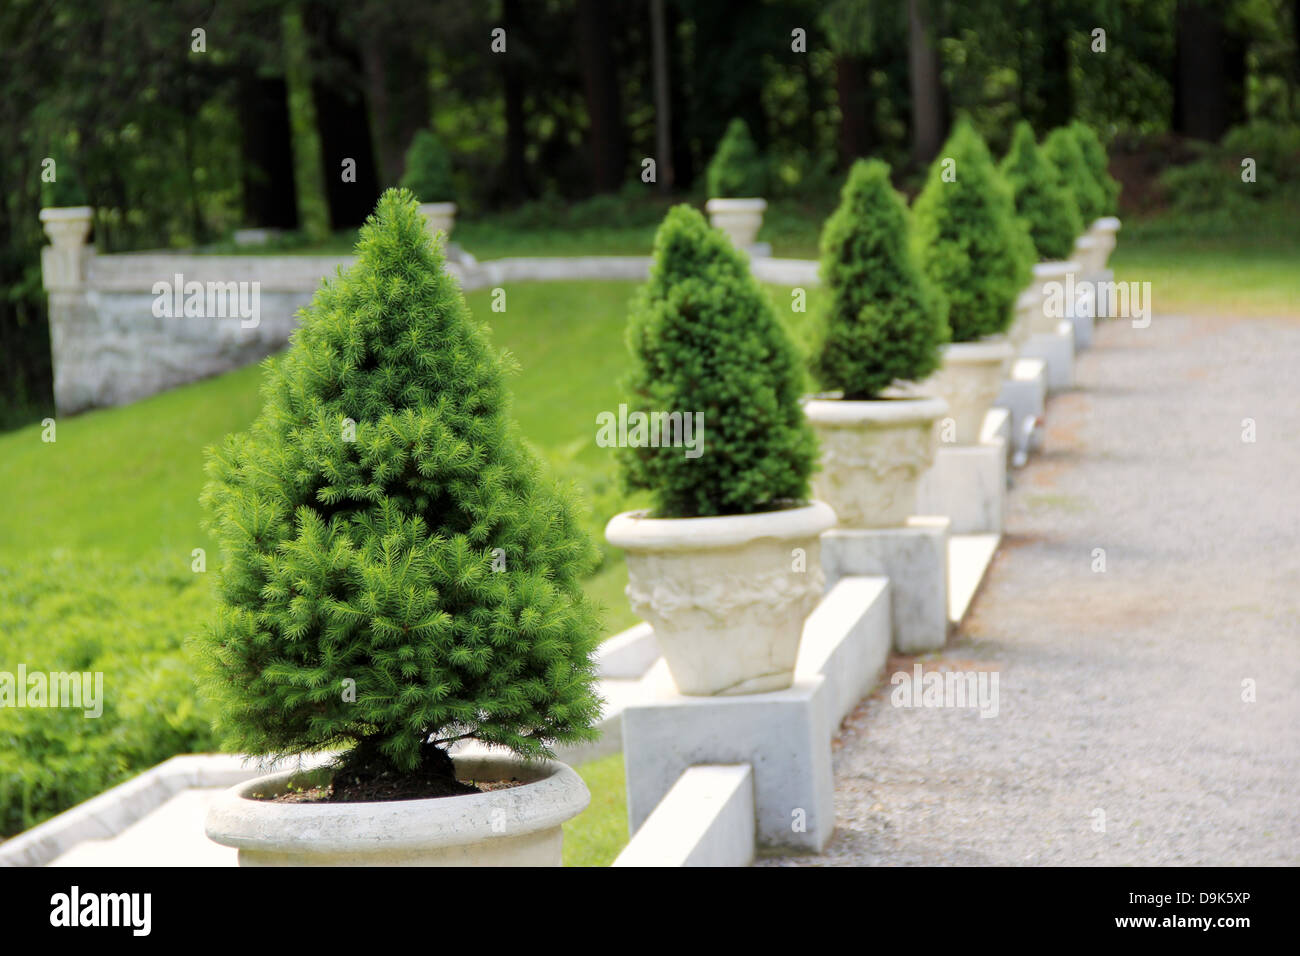 Several Dwarf Pine Trees In Marble Pots Placed In A Neat Line Stock Photo Alamy